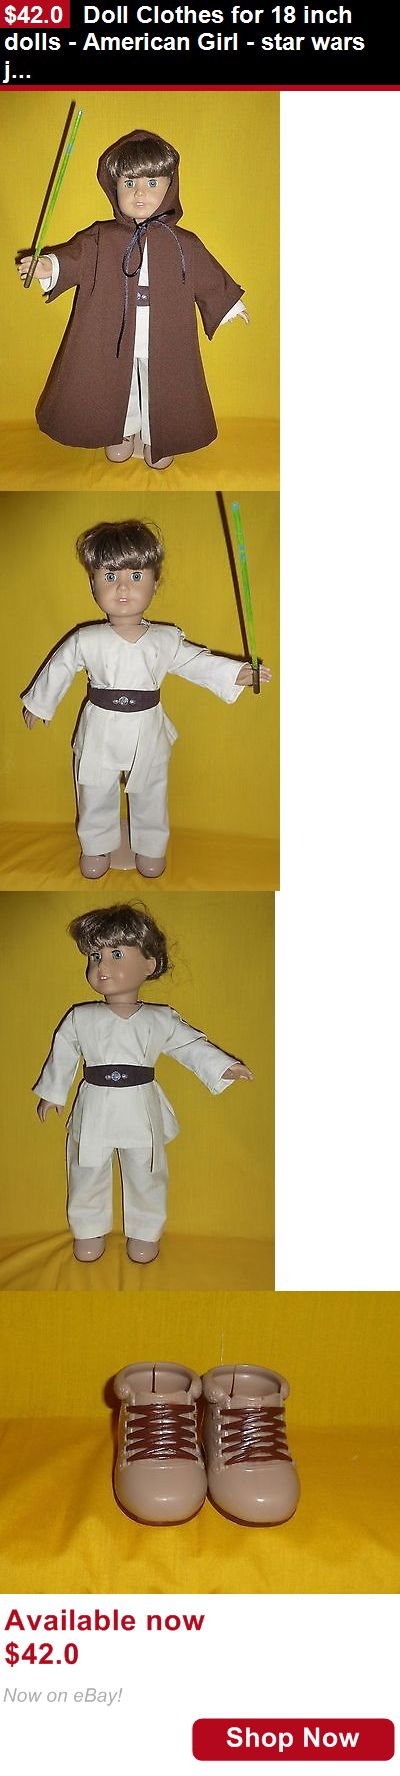 Telescope Cases And Bags: Doll Clothes For 18 Inch Dolls - American Girl - Star Wars Jedi Knight Outfit BUY IT NOW ONLY: $42.0